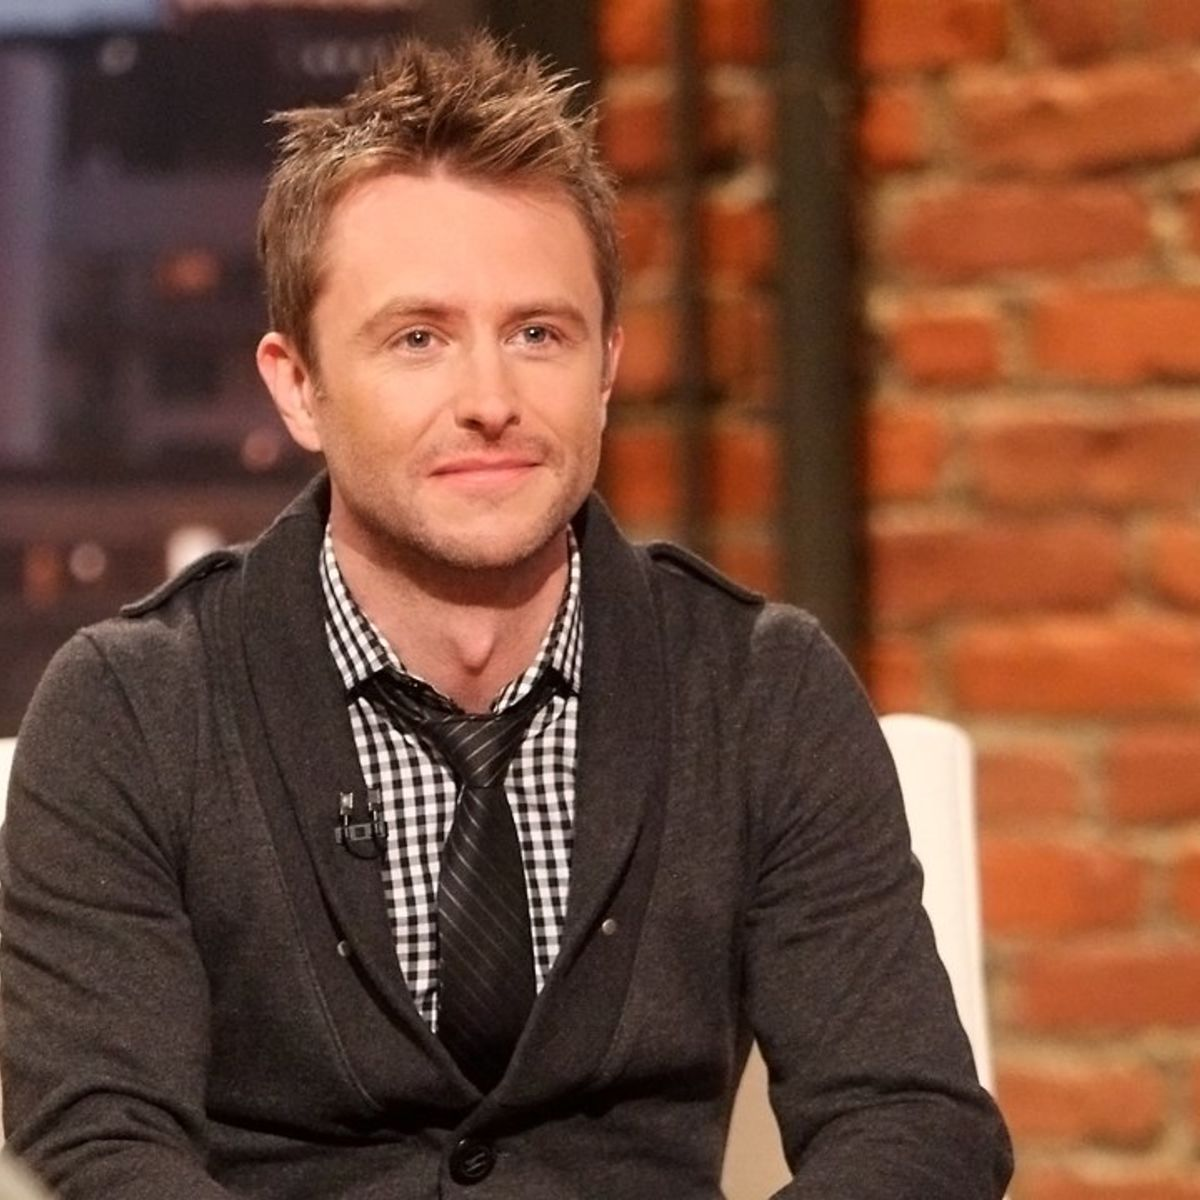 Chris Hardwick Makes Tearful Return to Talking Dead After Abuse Claims